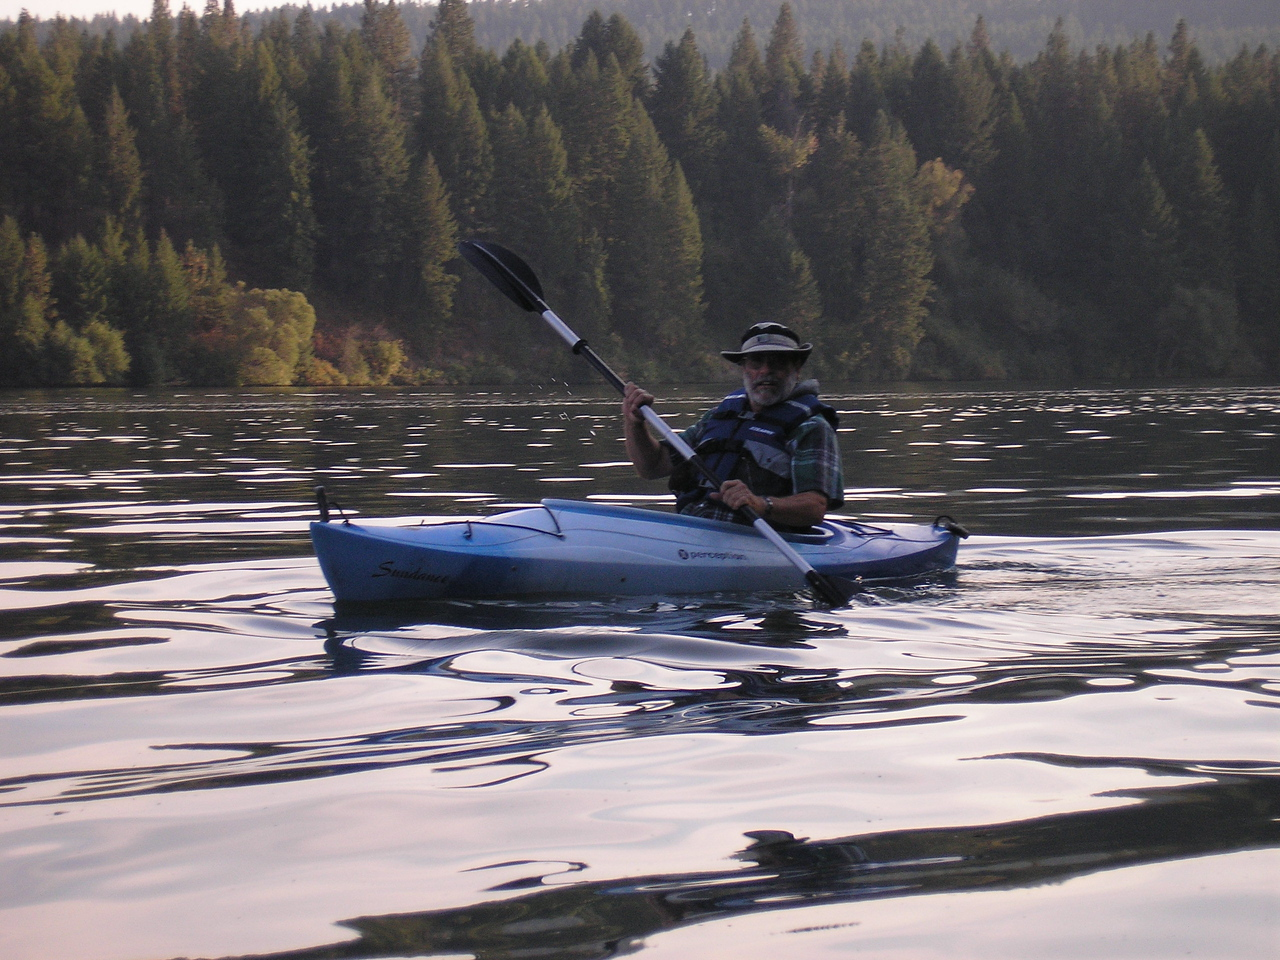 Here is one of the park kayaks, we go out on Long Lake and paddle around.